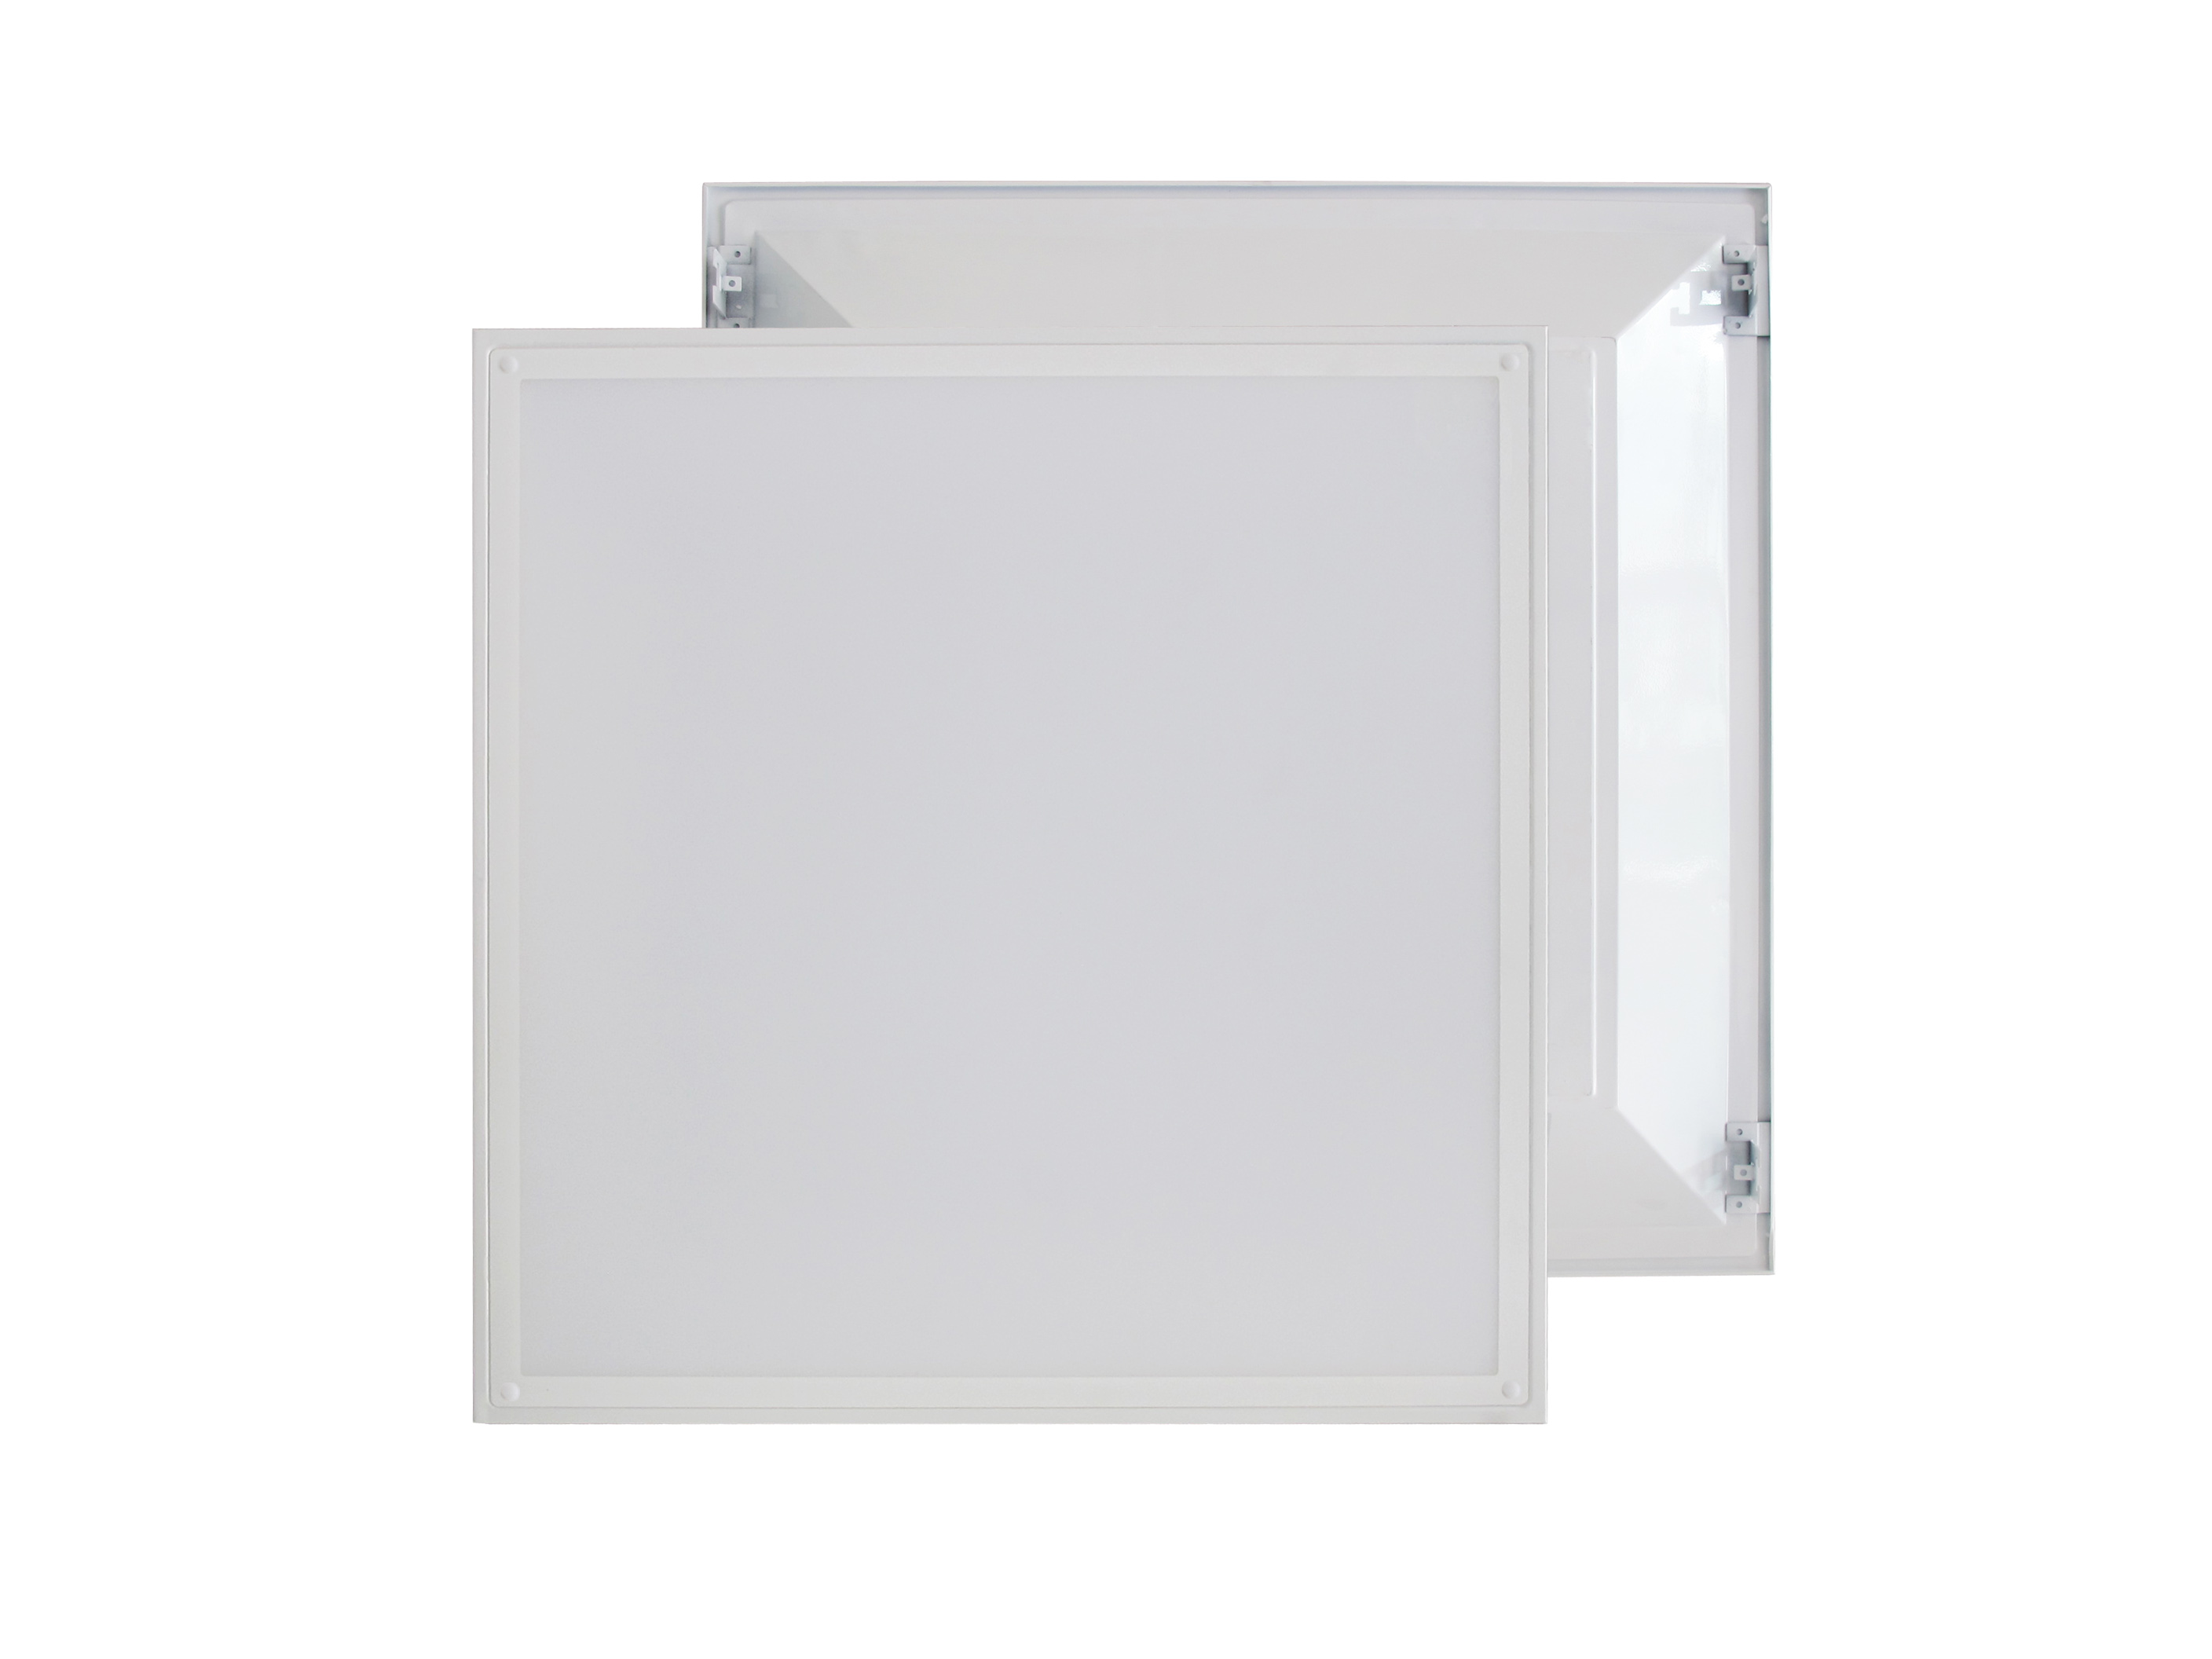 High lumens Back Lit LED Panel Light